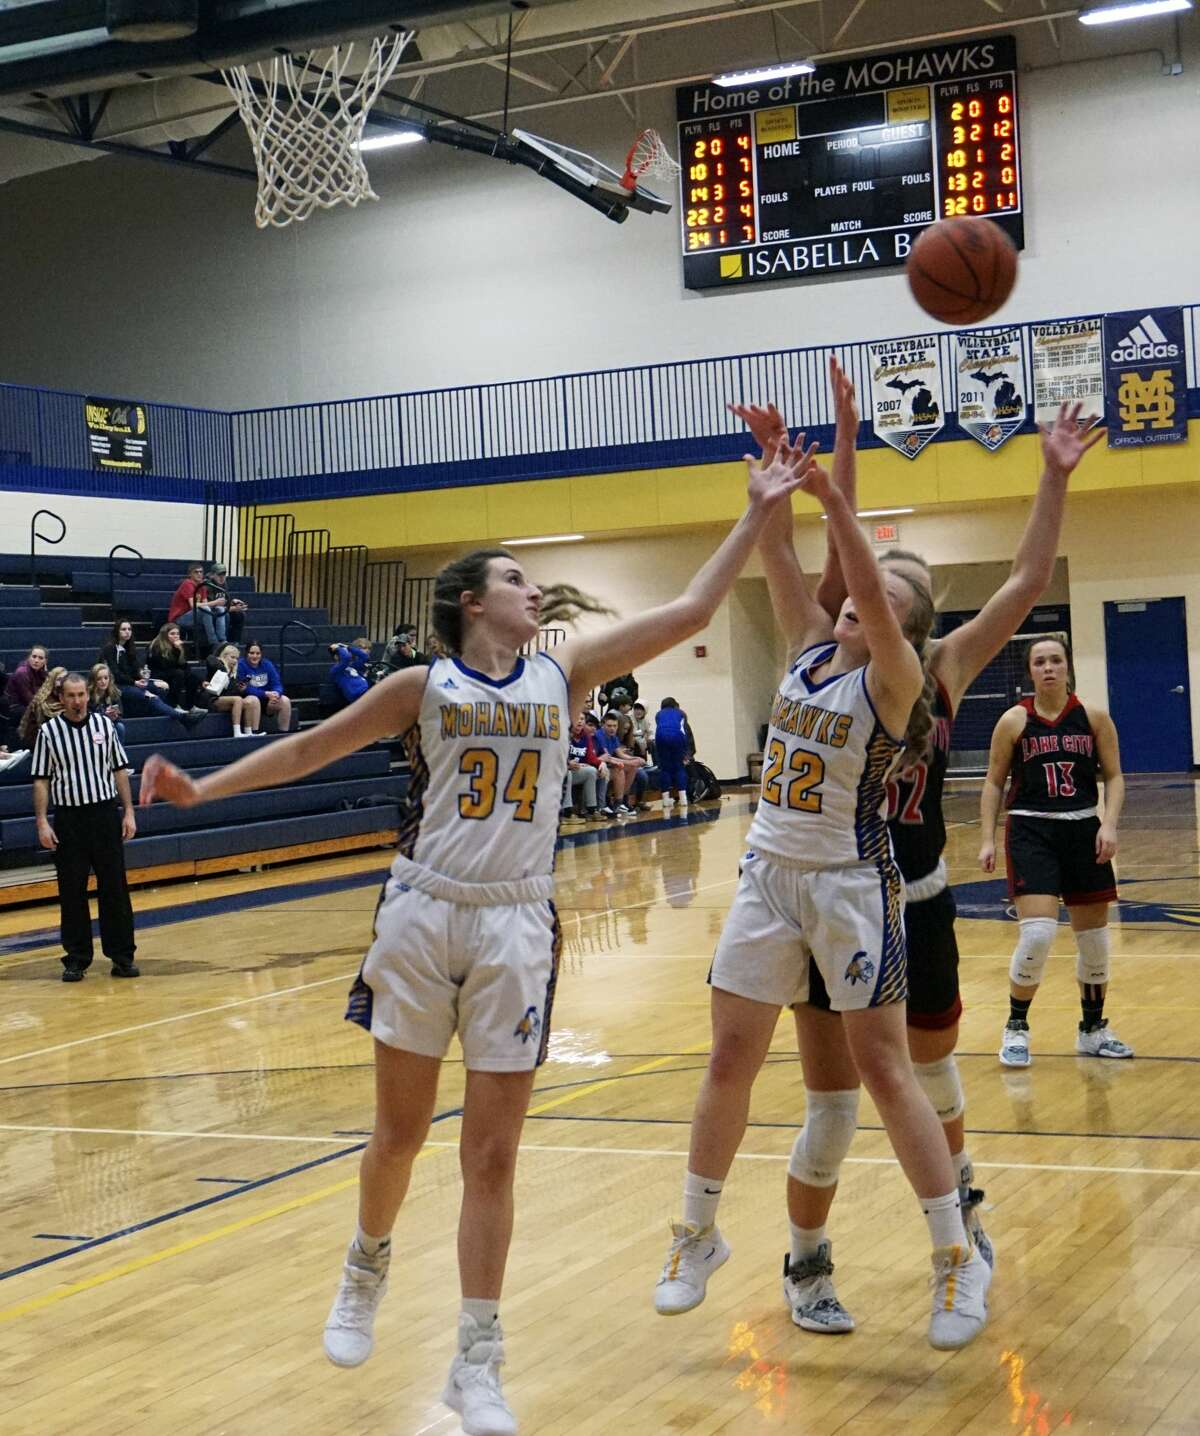 Morley Stanwood's girls basketball team defeated Lake City 54-49 at home on Monday night.